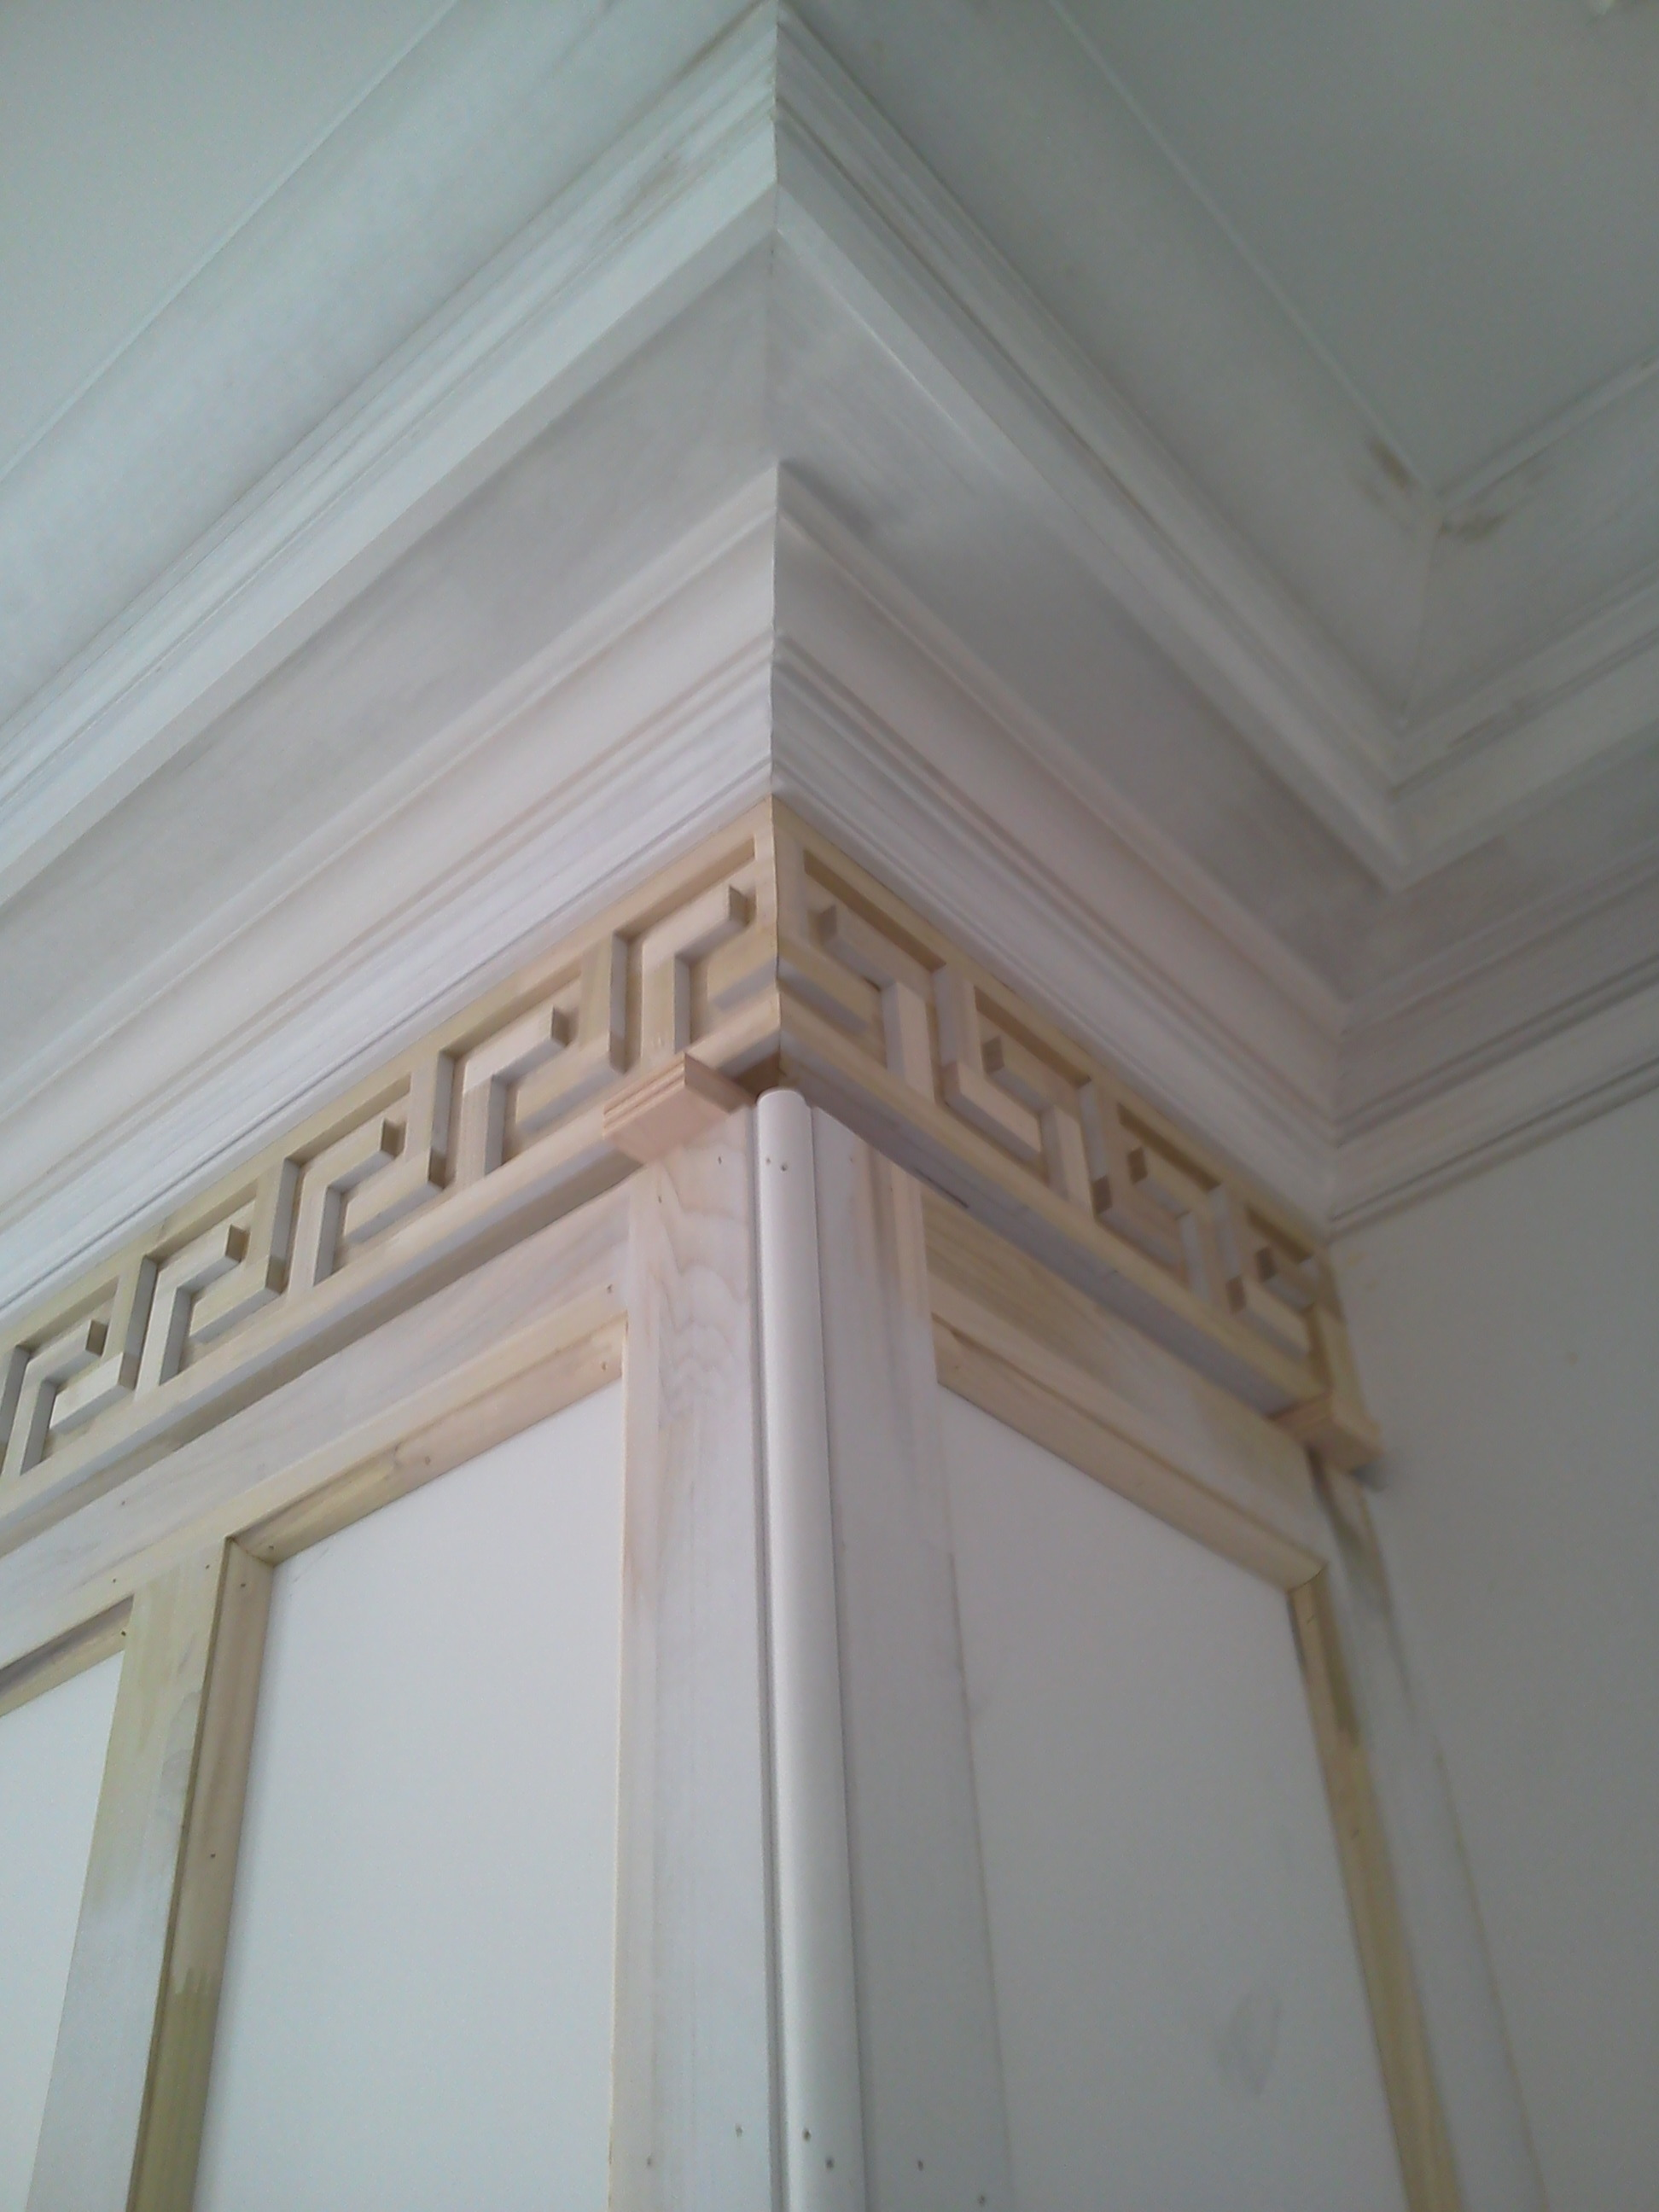 Corner View of the Greek Key with Crown Molding Above